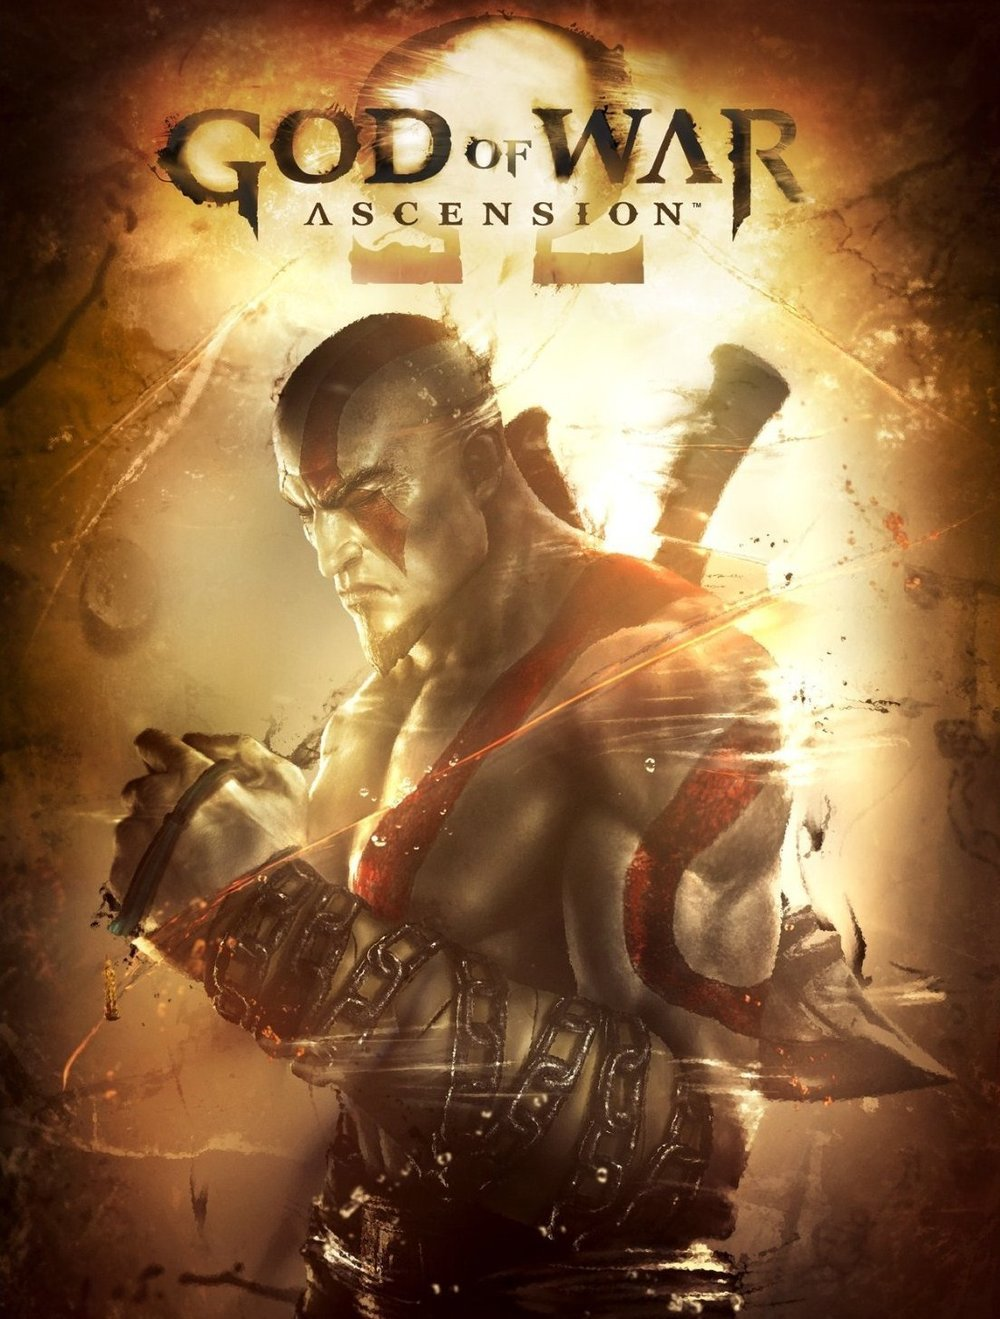 Rafe Pearlman's voice is featured on: GODS OF WAR: Ascension by Sony SCE Soundtrack by Tyler Bates (feat. Rafe Pearlman)